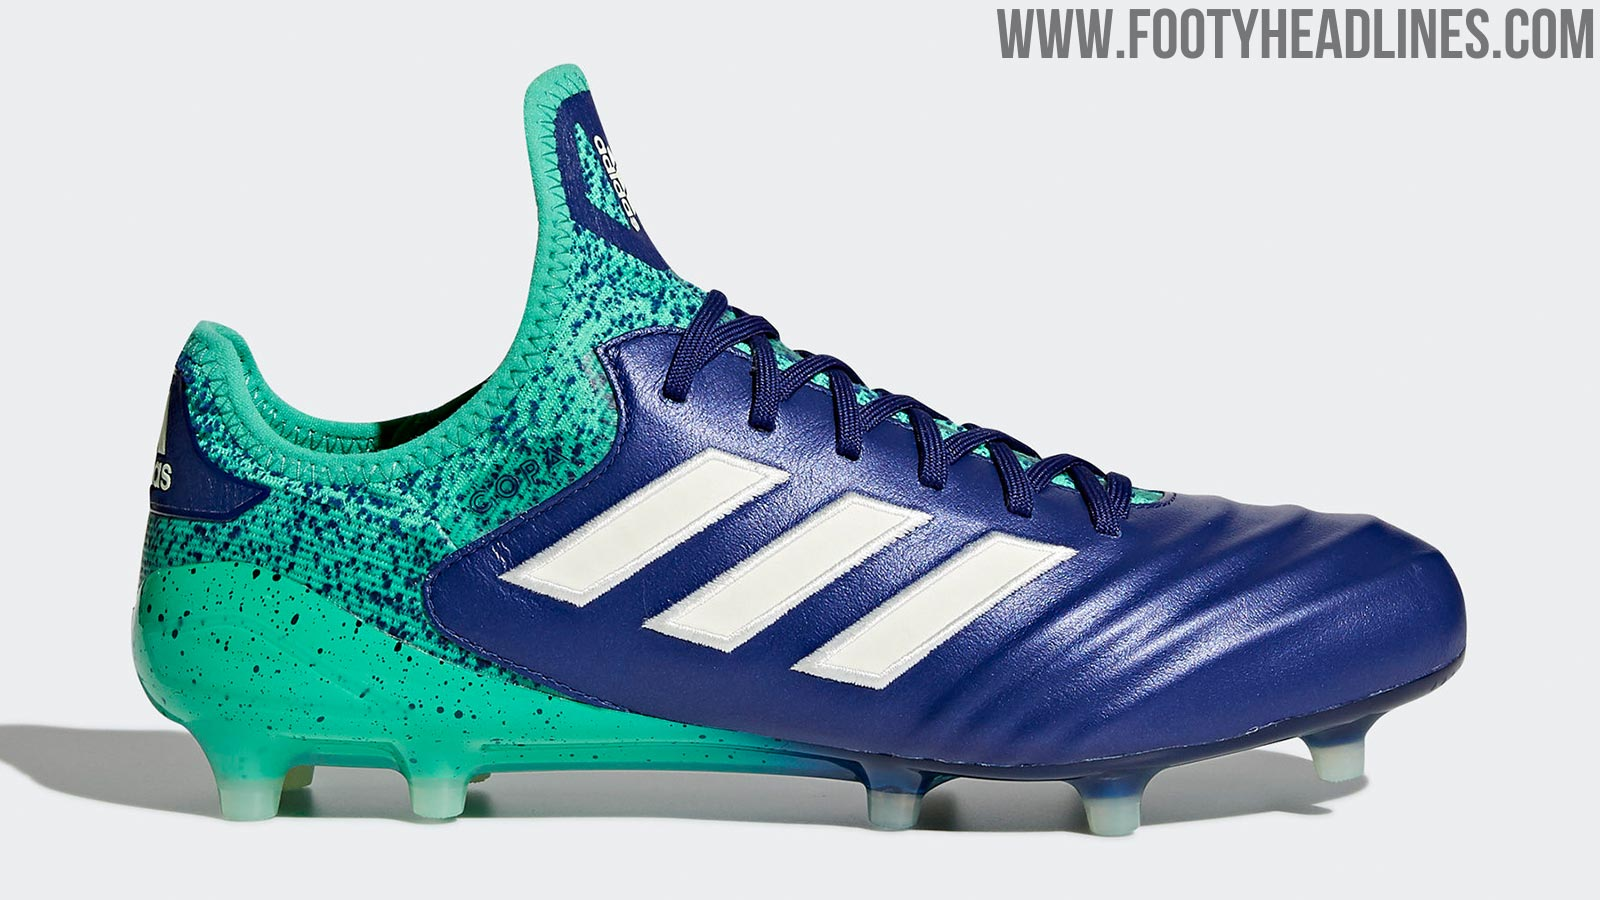 6899ff2f4 Adidas Copa 18.1 - Unity Ink   Aero Green   Hi-Res Green. This is the Adidas  Copa 18  Deadly Strike  football boot edition.